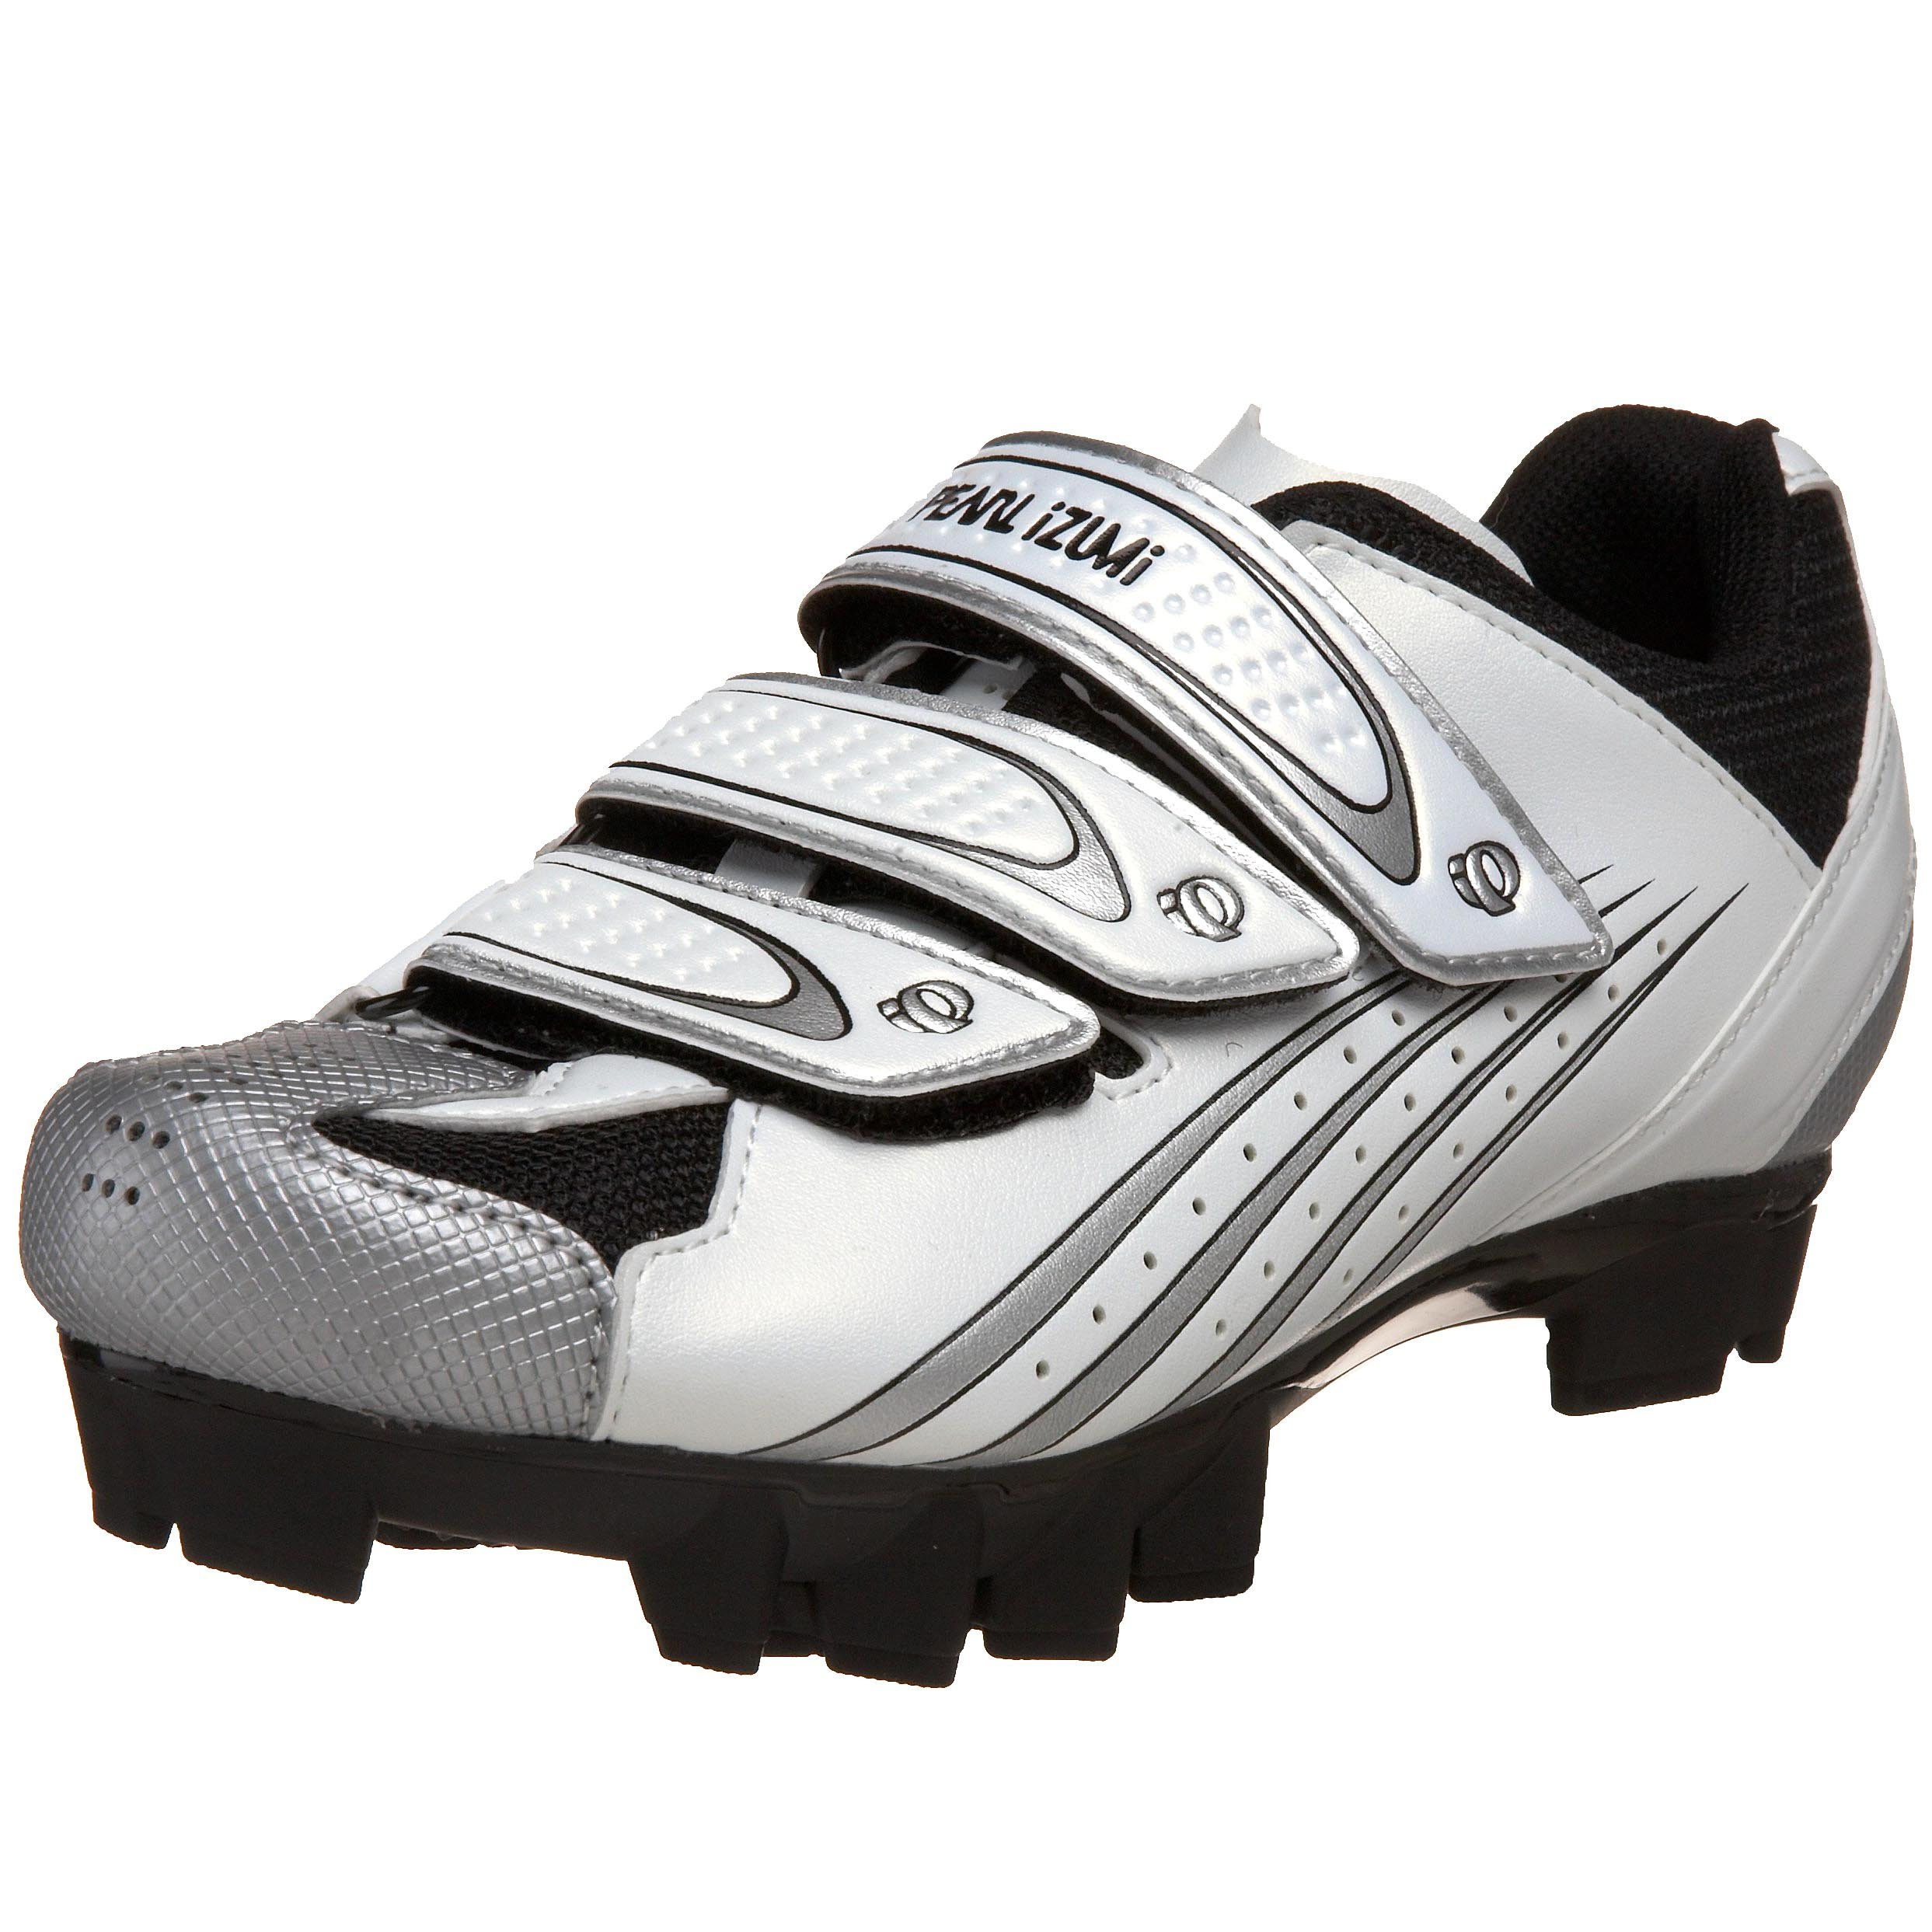 Pearl iZUMi Women's Select MTB Cycling Shoe,White/Silver,37 M EU / US Women's 5.5 M